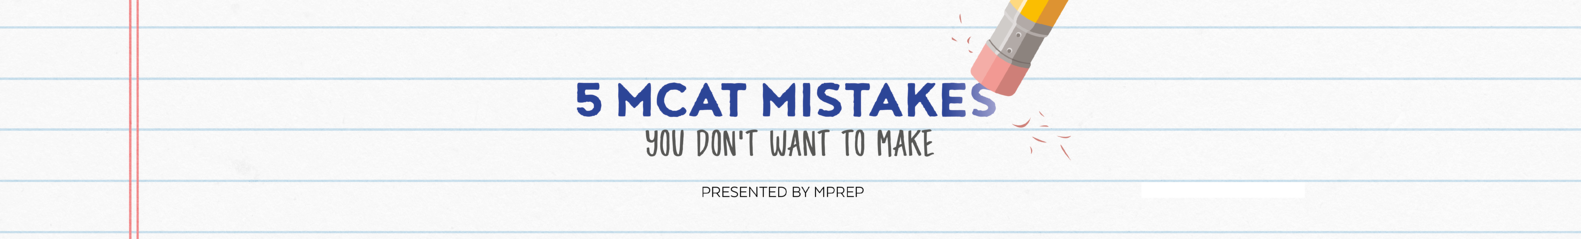 5_MCAT_mistakes_-_Watch_webinar_x_long.png